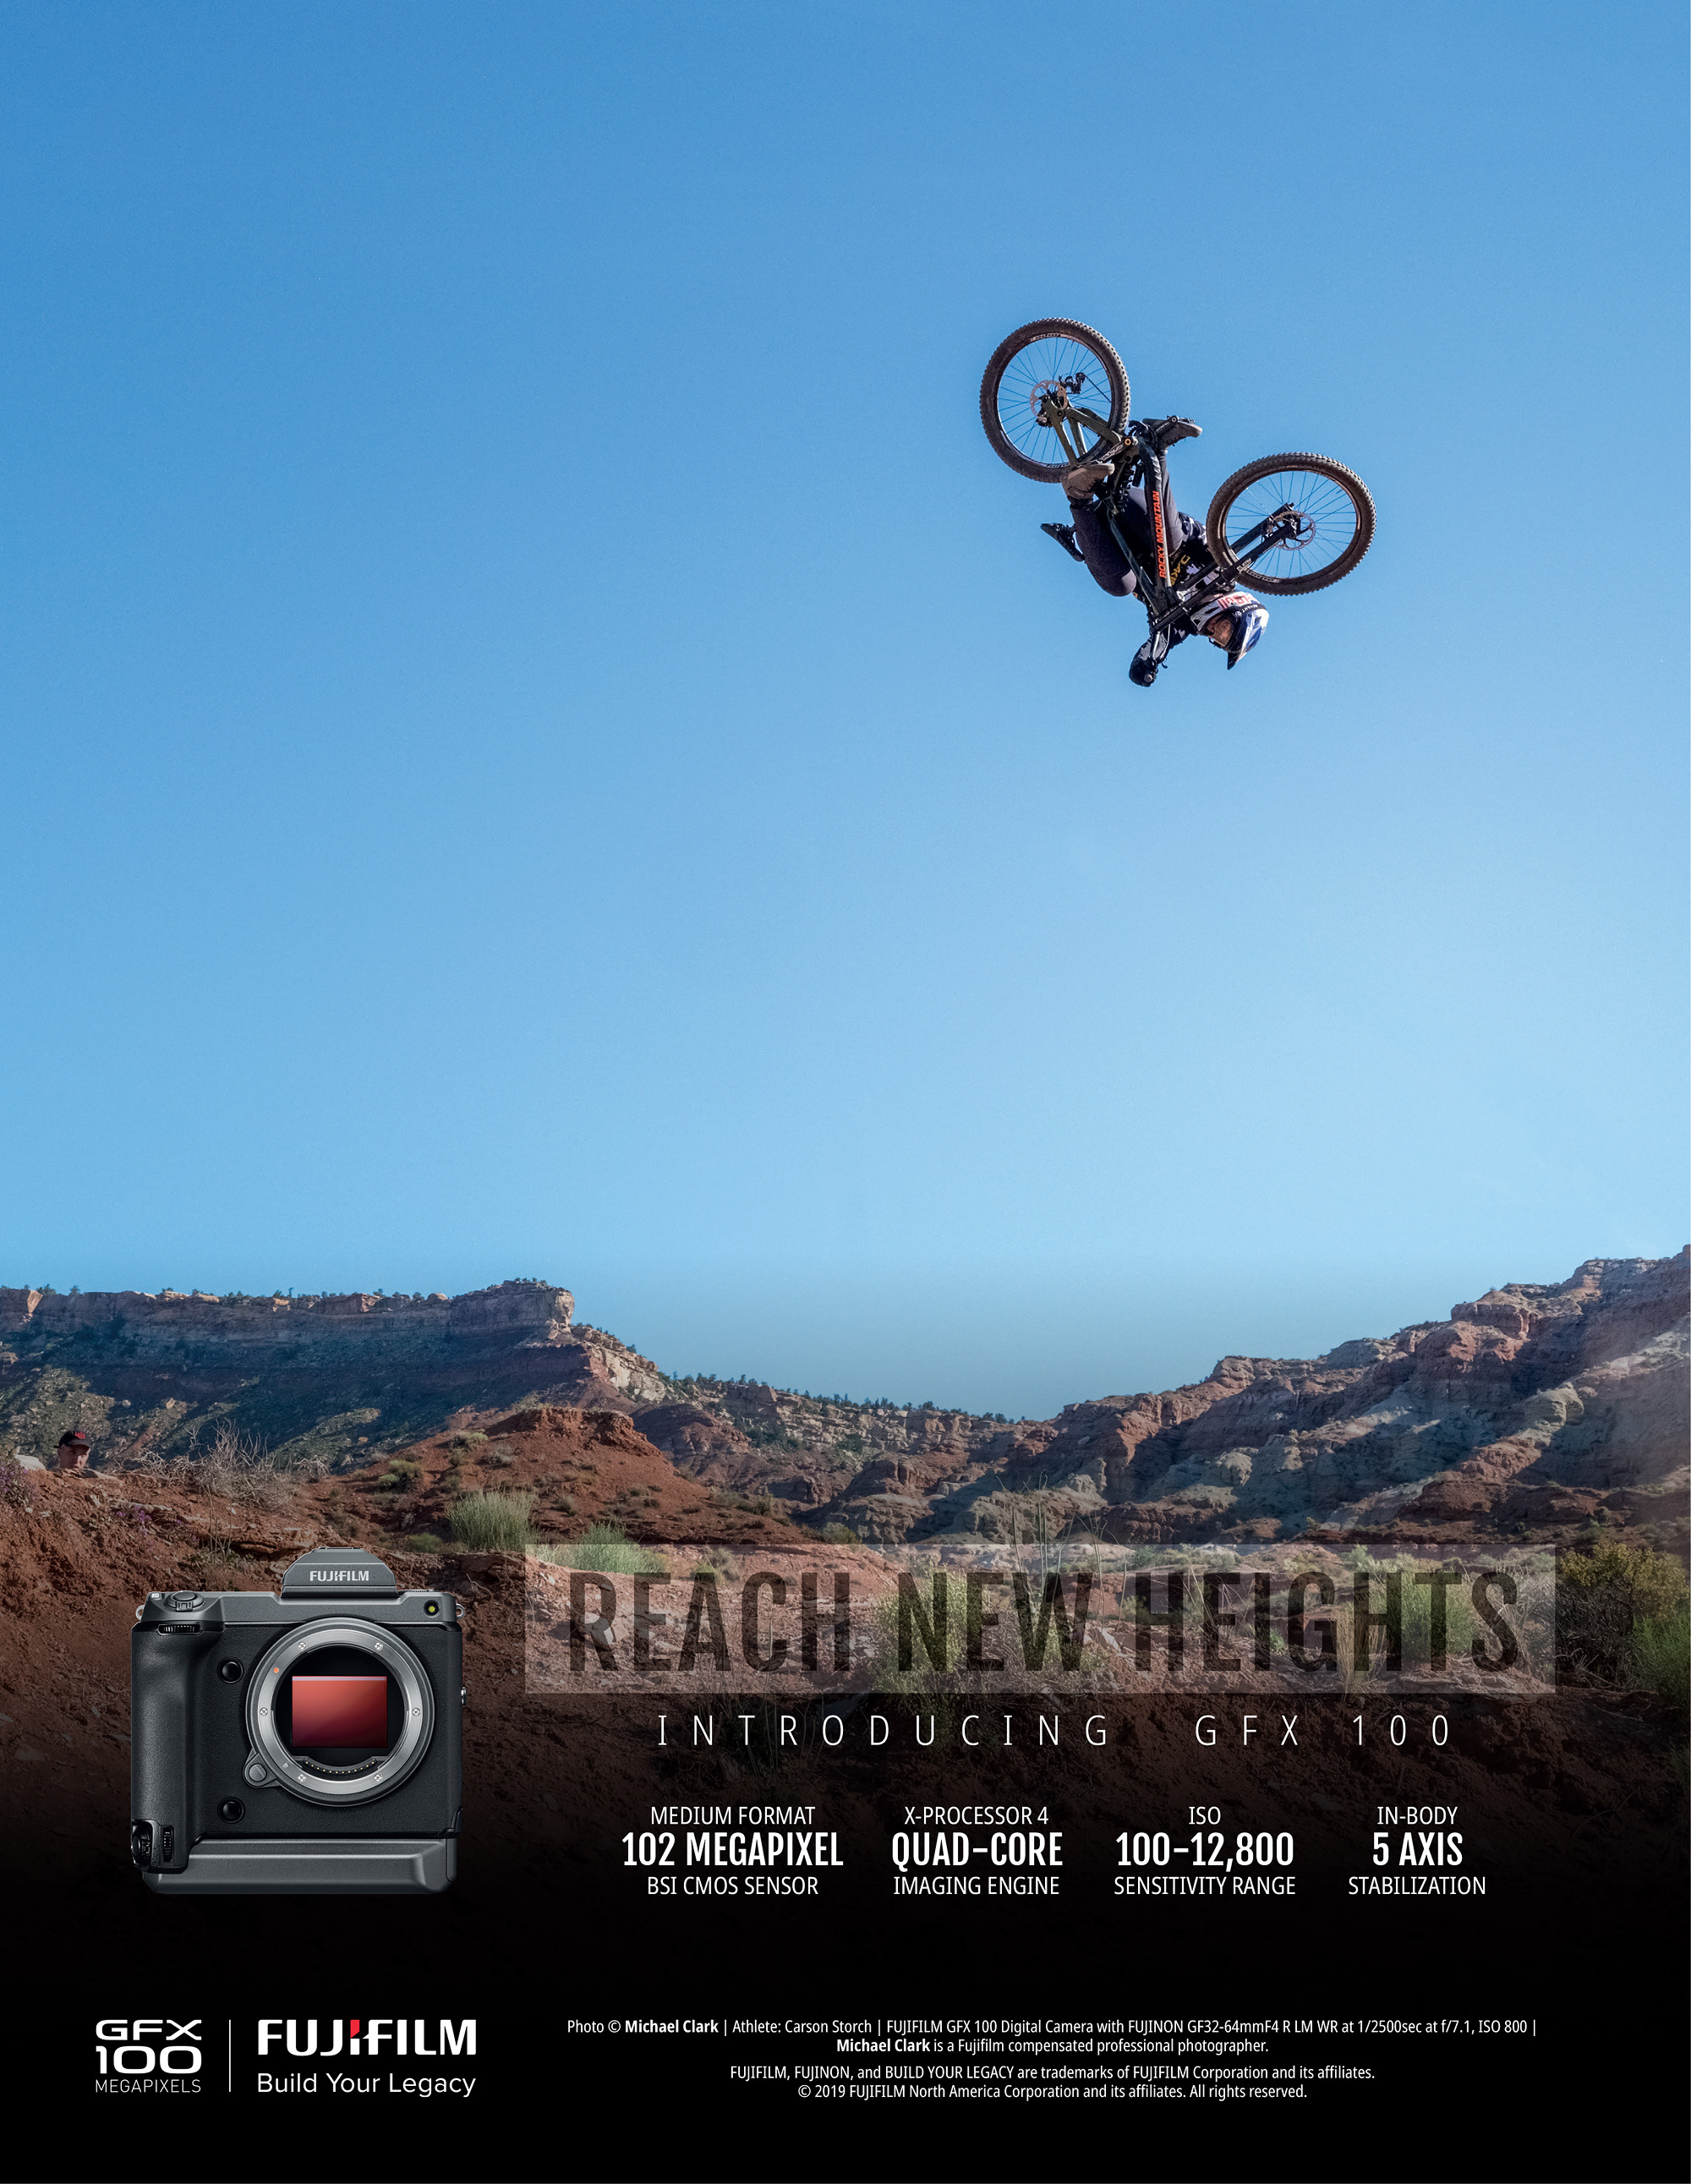 fujifilm-gfx100-reach-new-heights-advert-8.375x10.875-flat